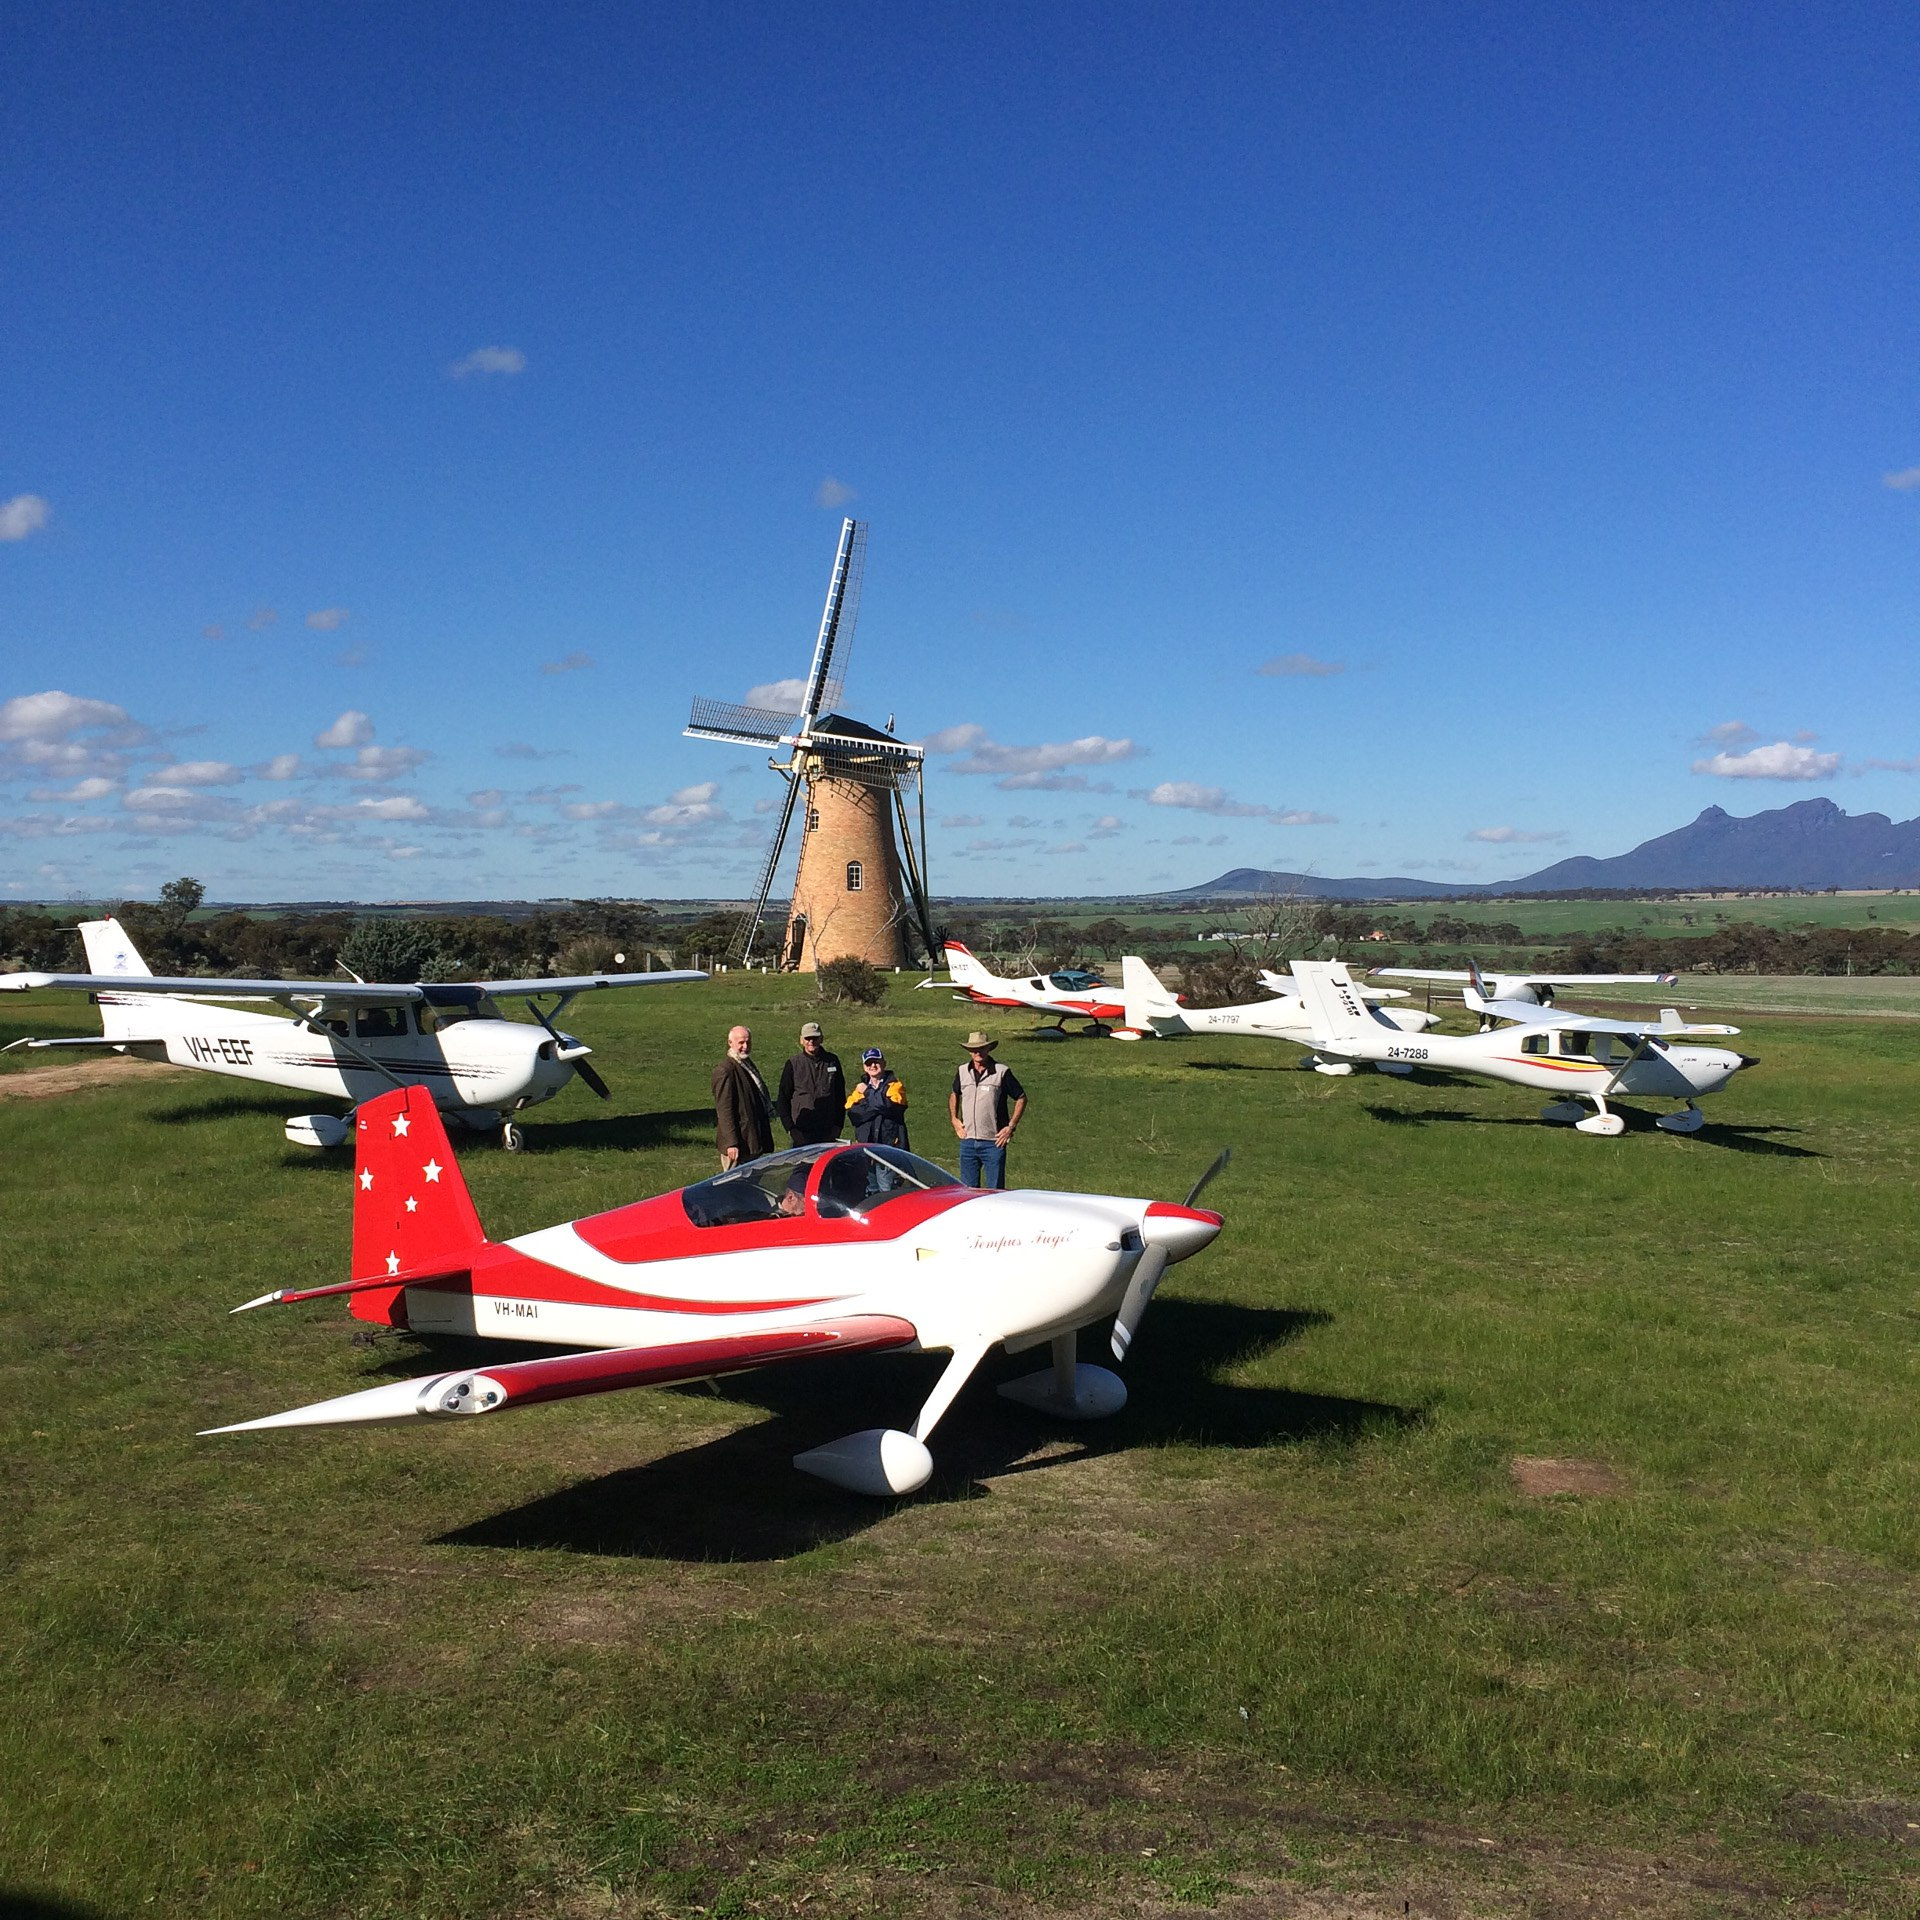 aircraft at the lily dutch windmill runway airstrip